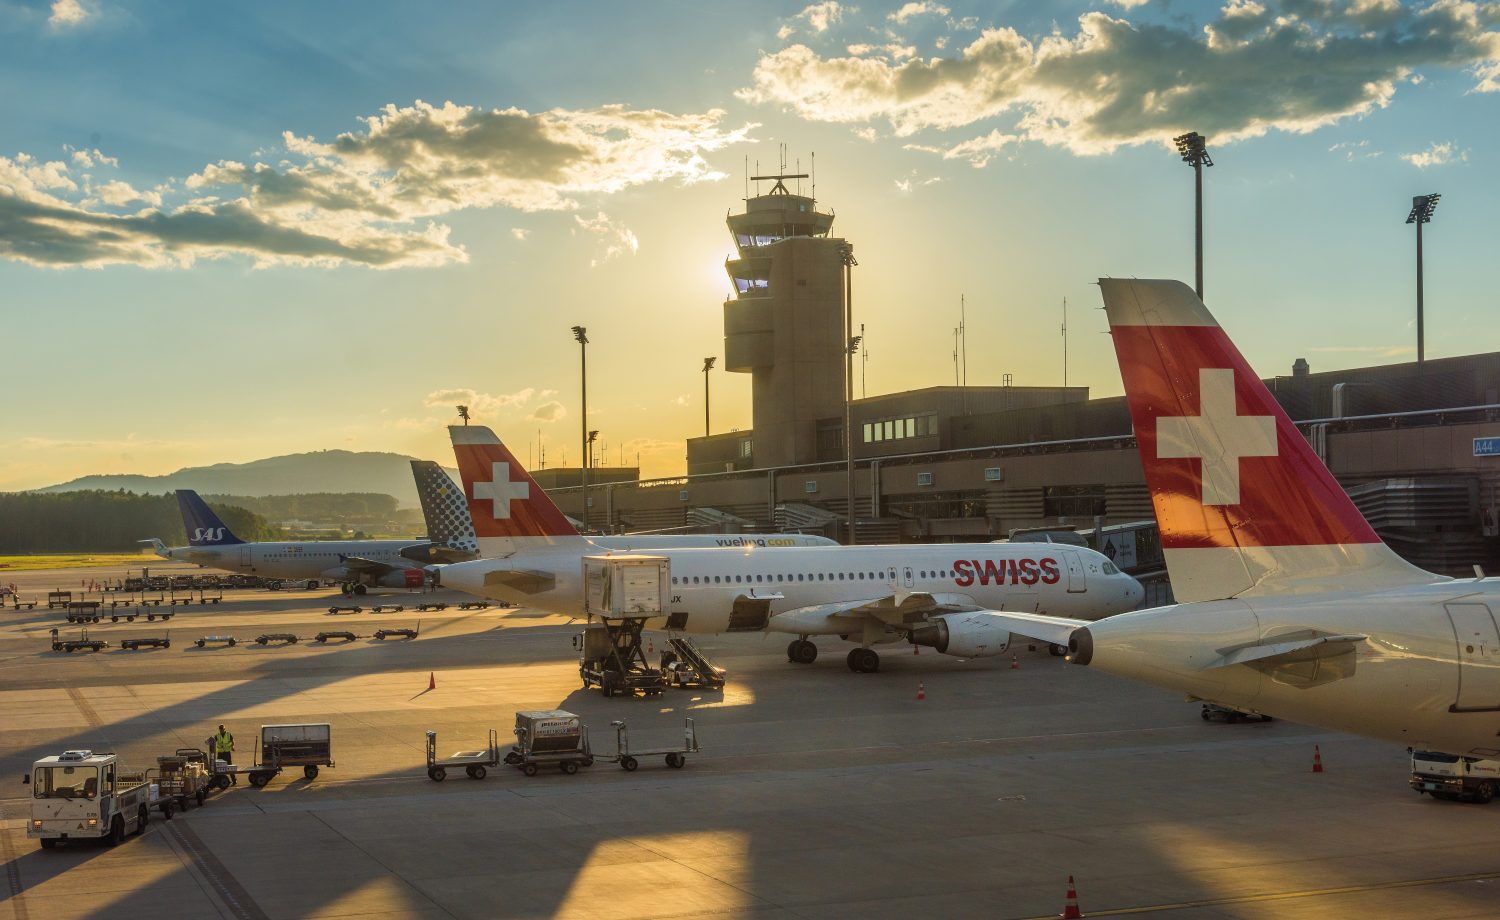 Kloten Airport In Zurich With Aircrafts